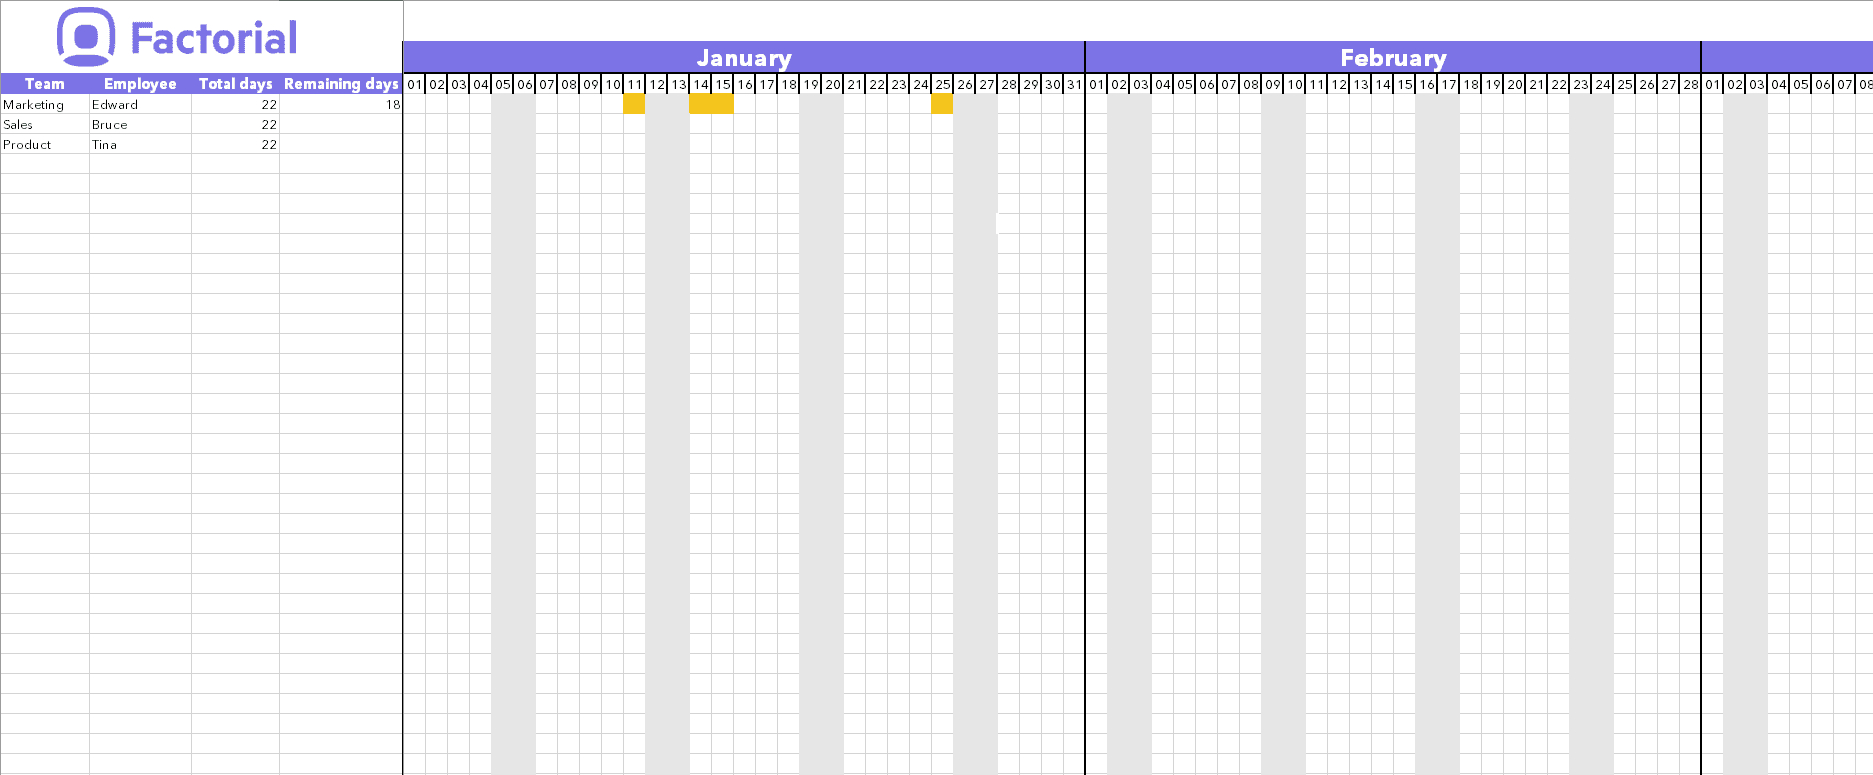 Manage Time Off Requests W/ Free Template | Factorial Printable Hr Annual Calendar For Time Off 2019